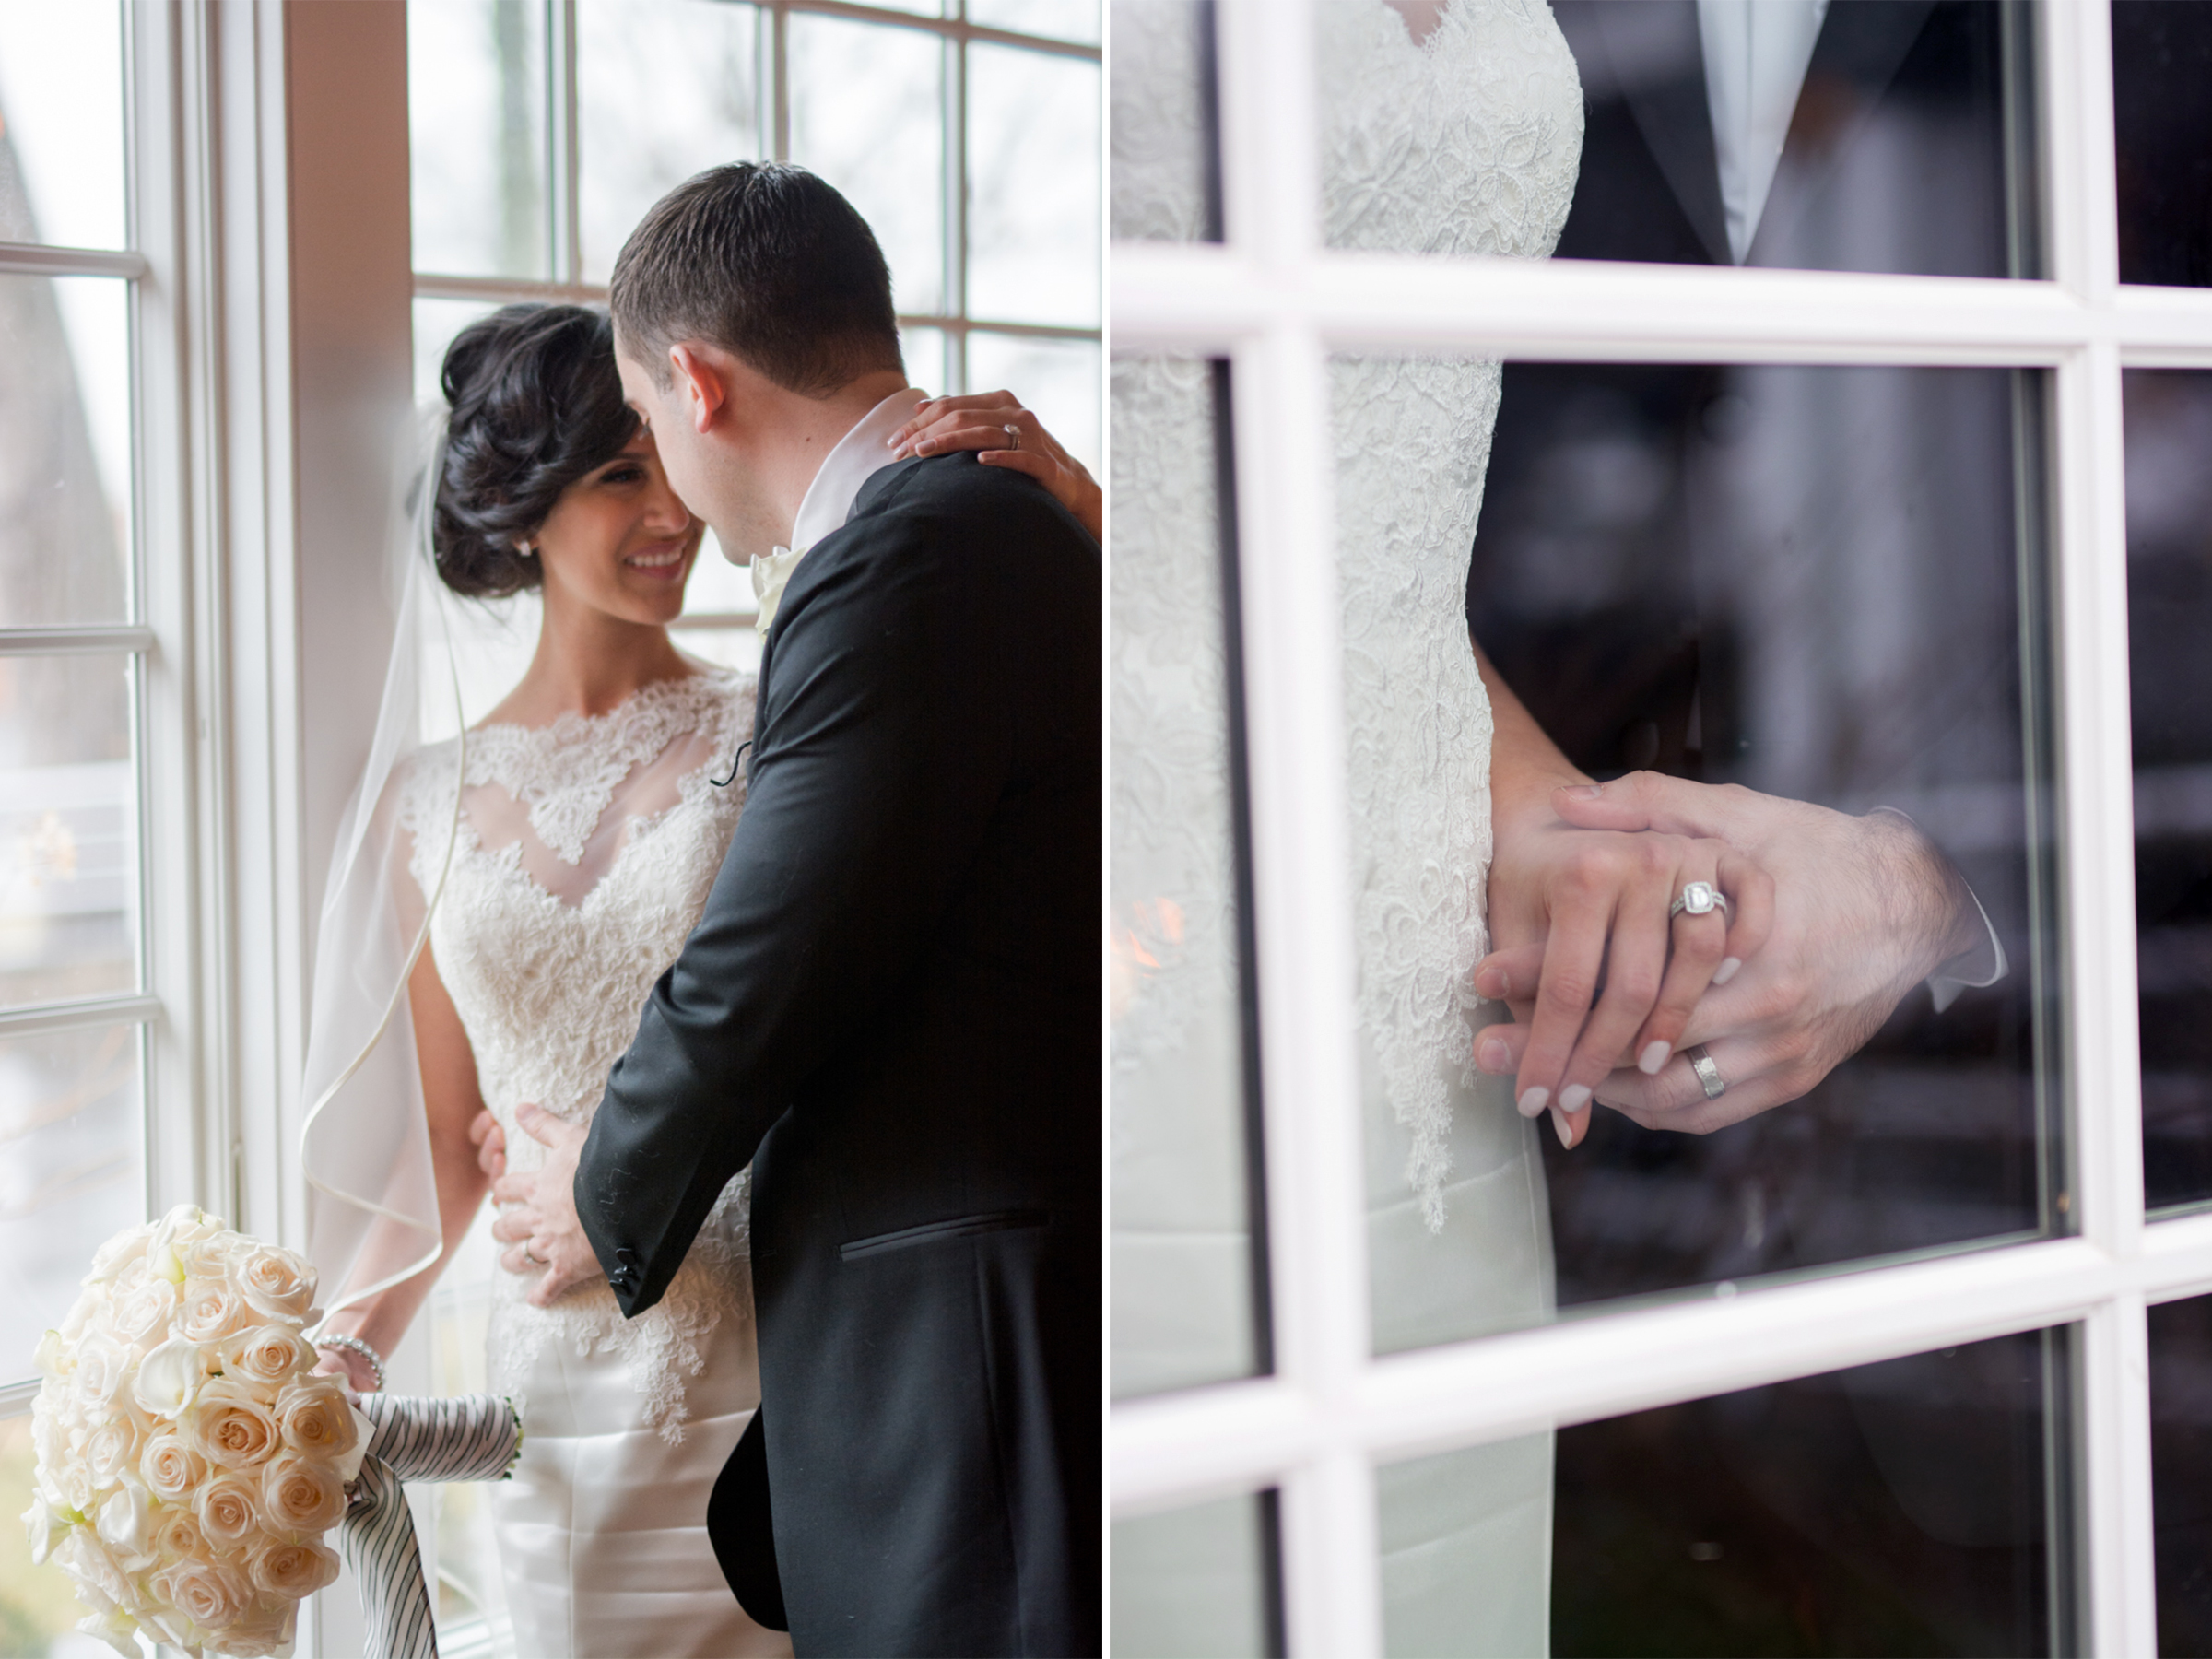 Michelle+Joe- Bride and Groom Window Portrait and Wedding Rings - Ryland Inn Winter Wedding - New Jersey - Olivia Christina Photo.jpg